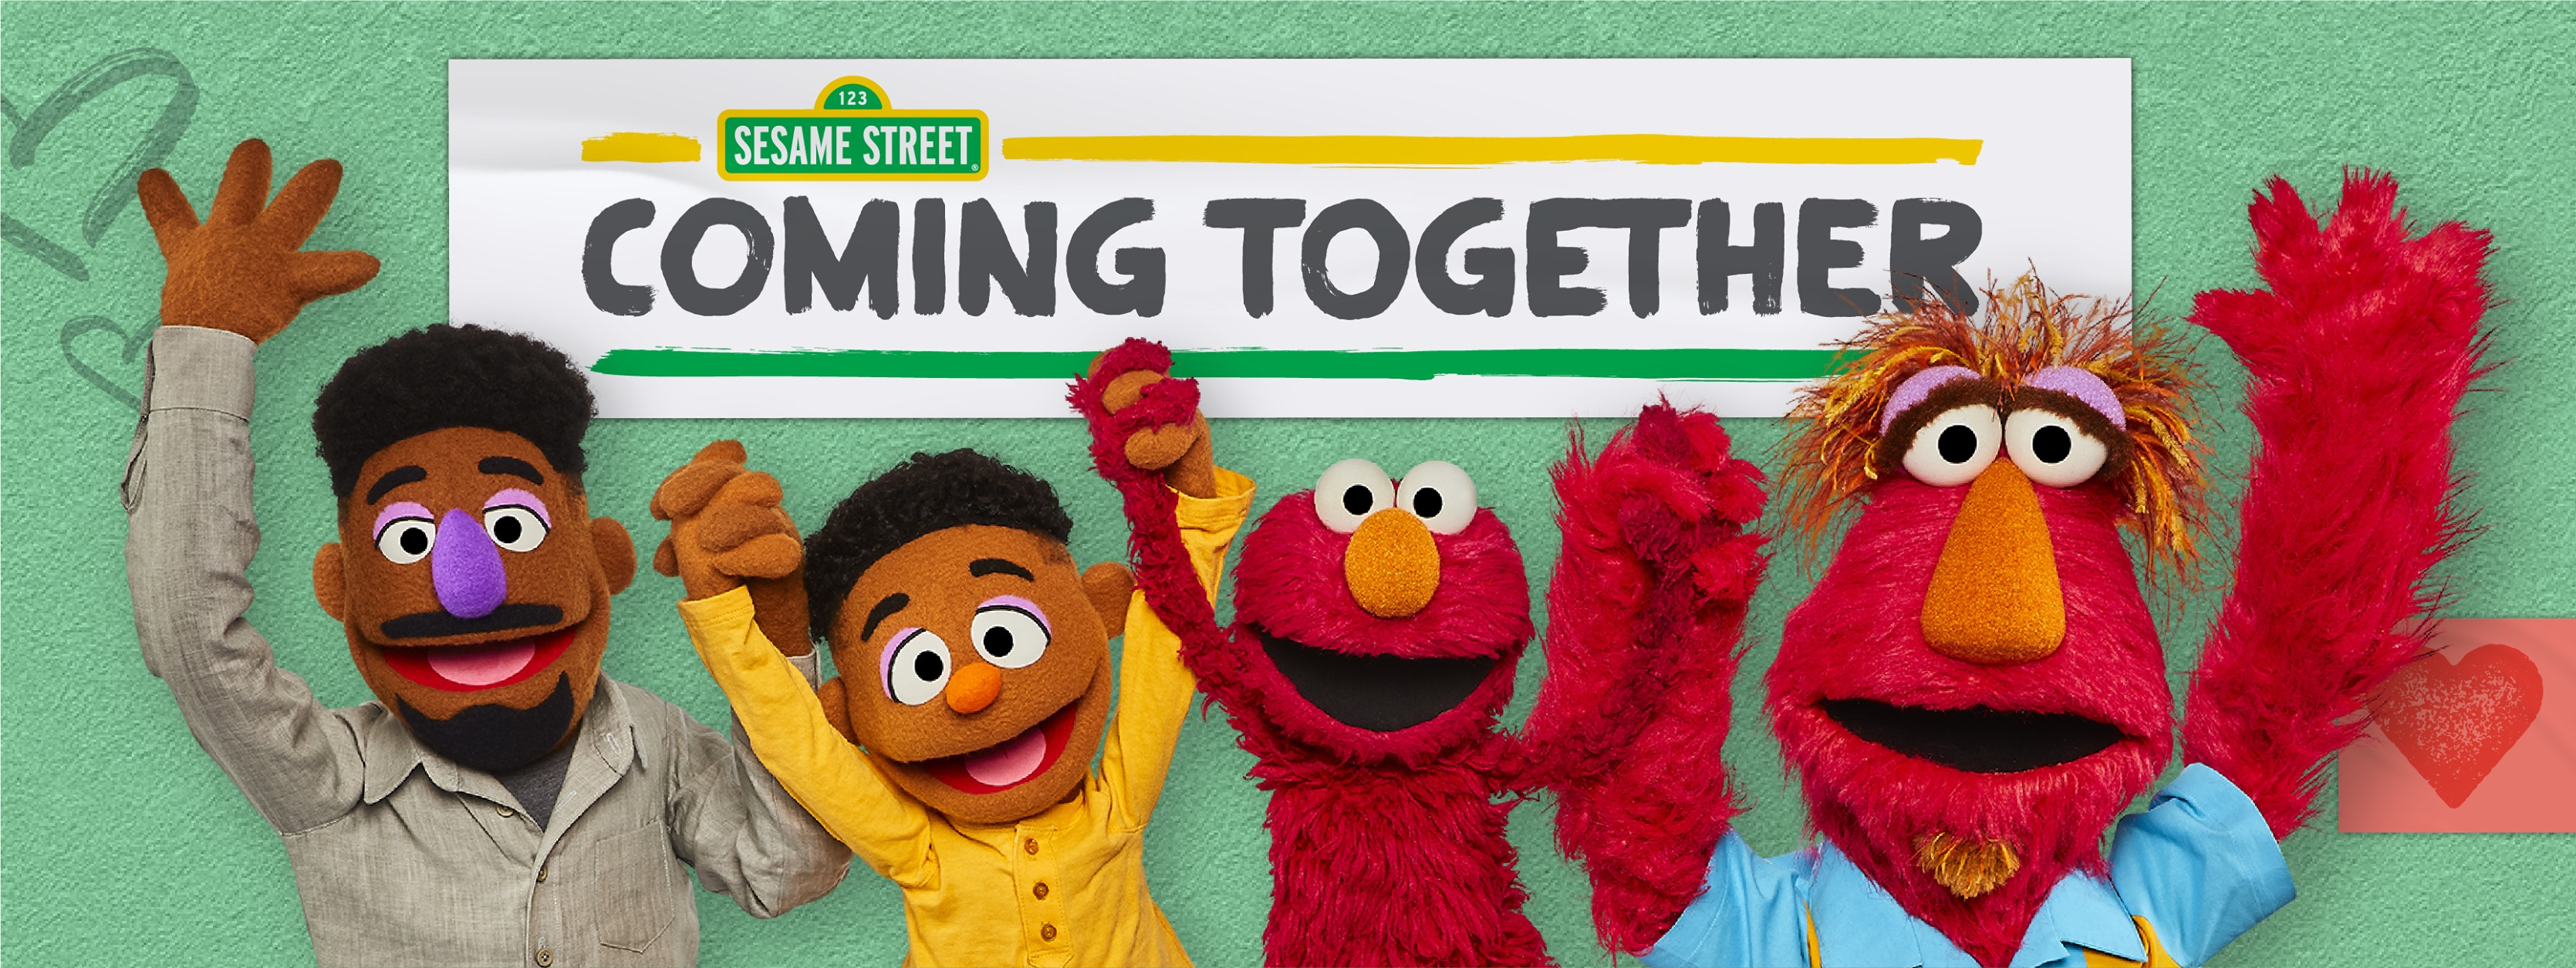 Coming together media promo